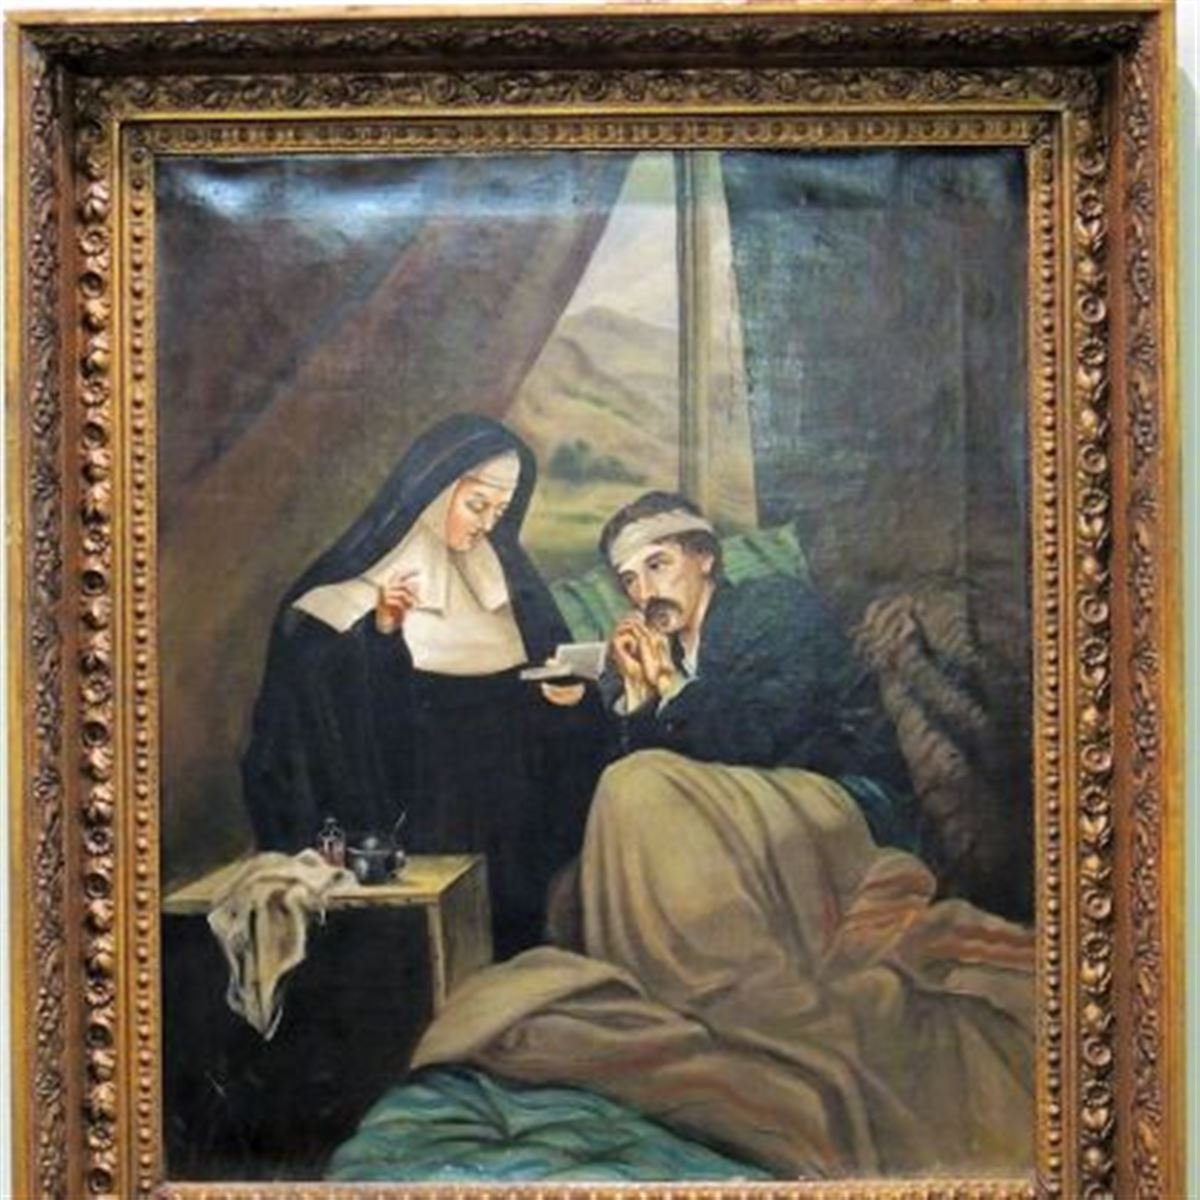 A Catholic Sister of Mercy comforts a Union soldier in a painting allegedly commissioned by Abraham Lincoln. Sisters, who could only serve as unpaid volunteers assisting the surgeons of both armies, were praised for their fortitude and discipline.